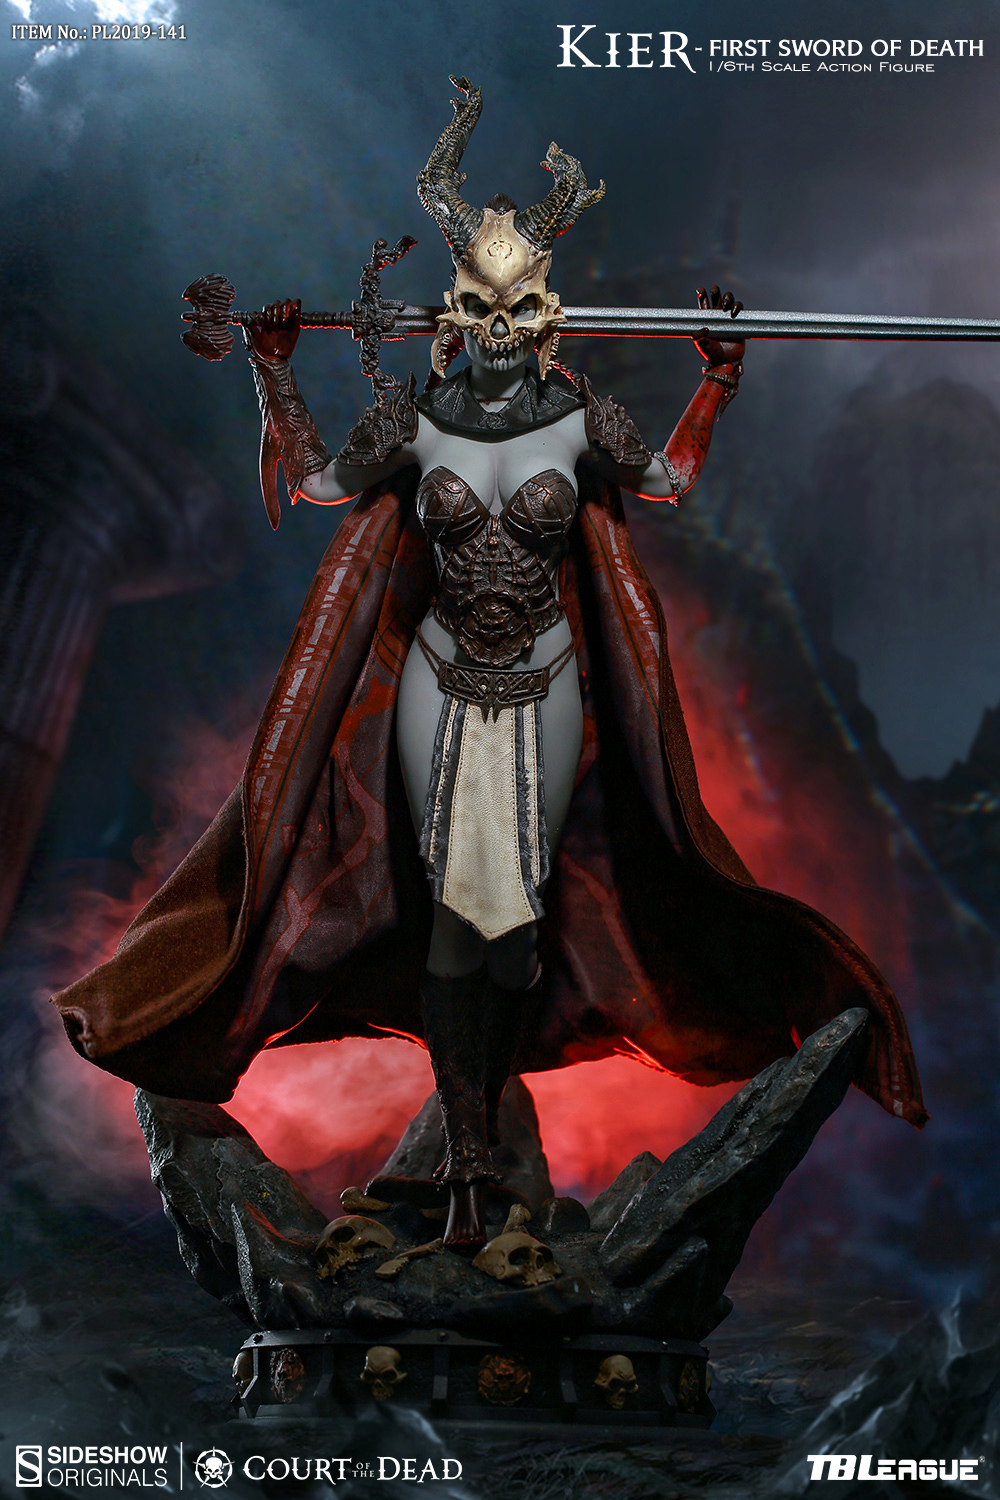 horror - NEW PRODUCT: TBLeague & Sideshow: 1/6 Court of the Dead - Valkyrie Cole / Kier movable doll (PL2019-141) 16260310